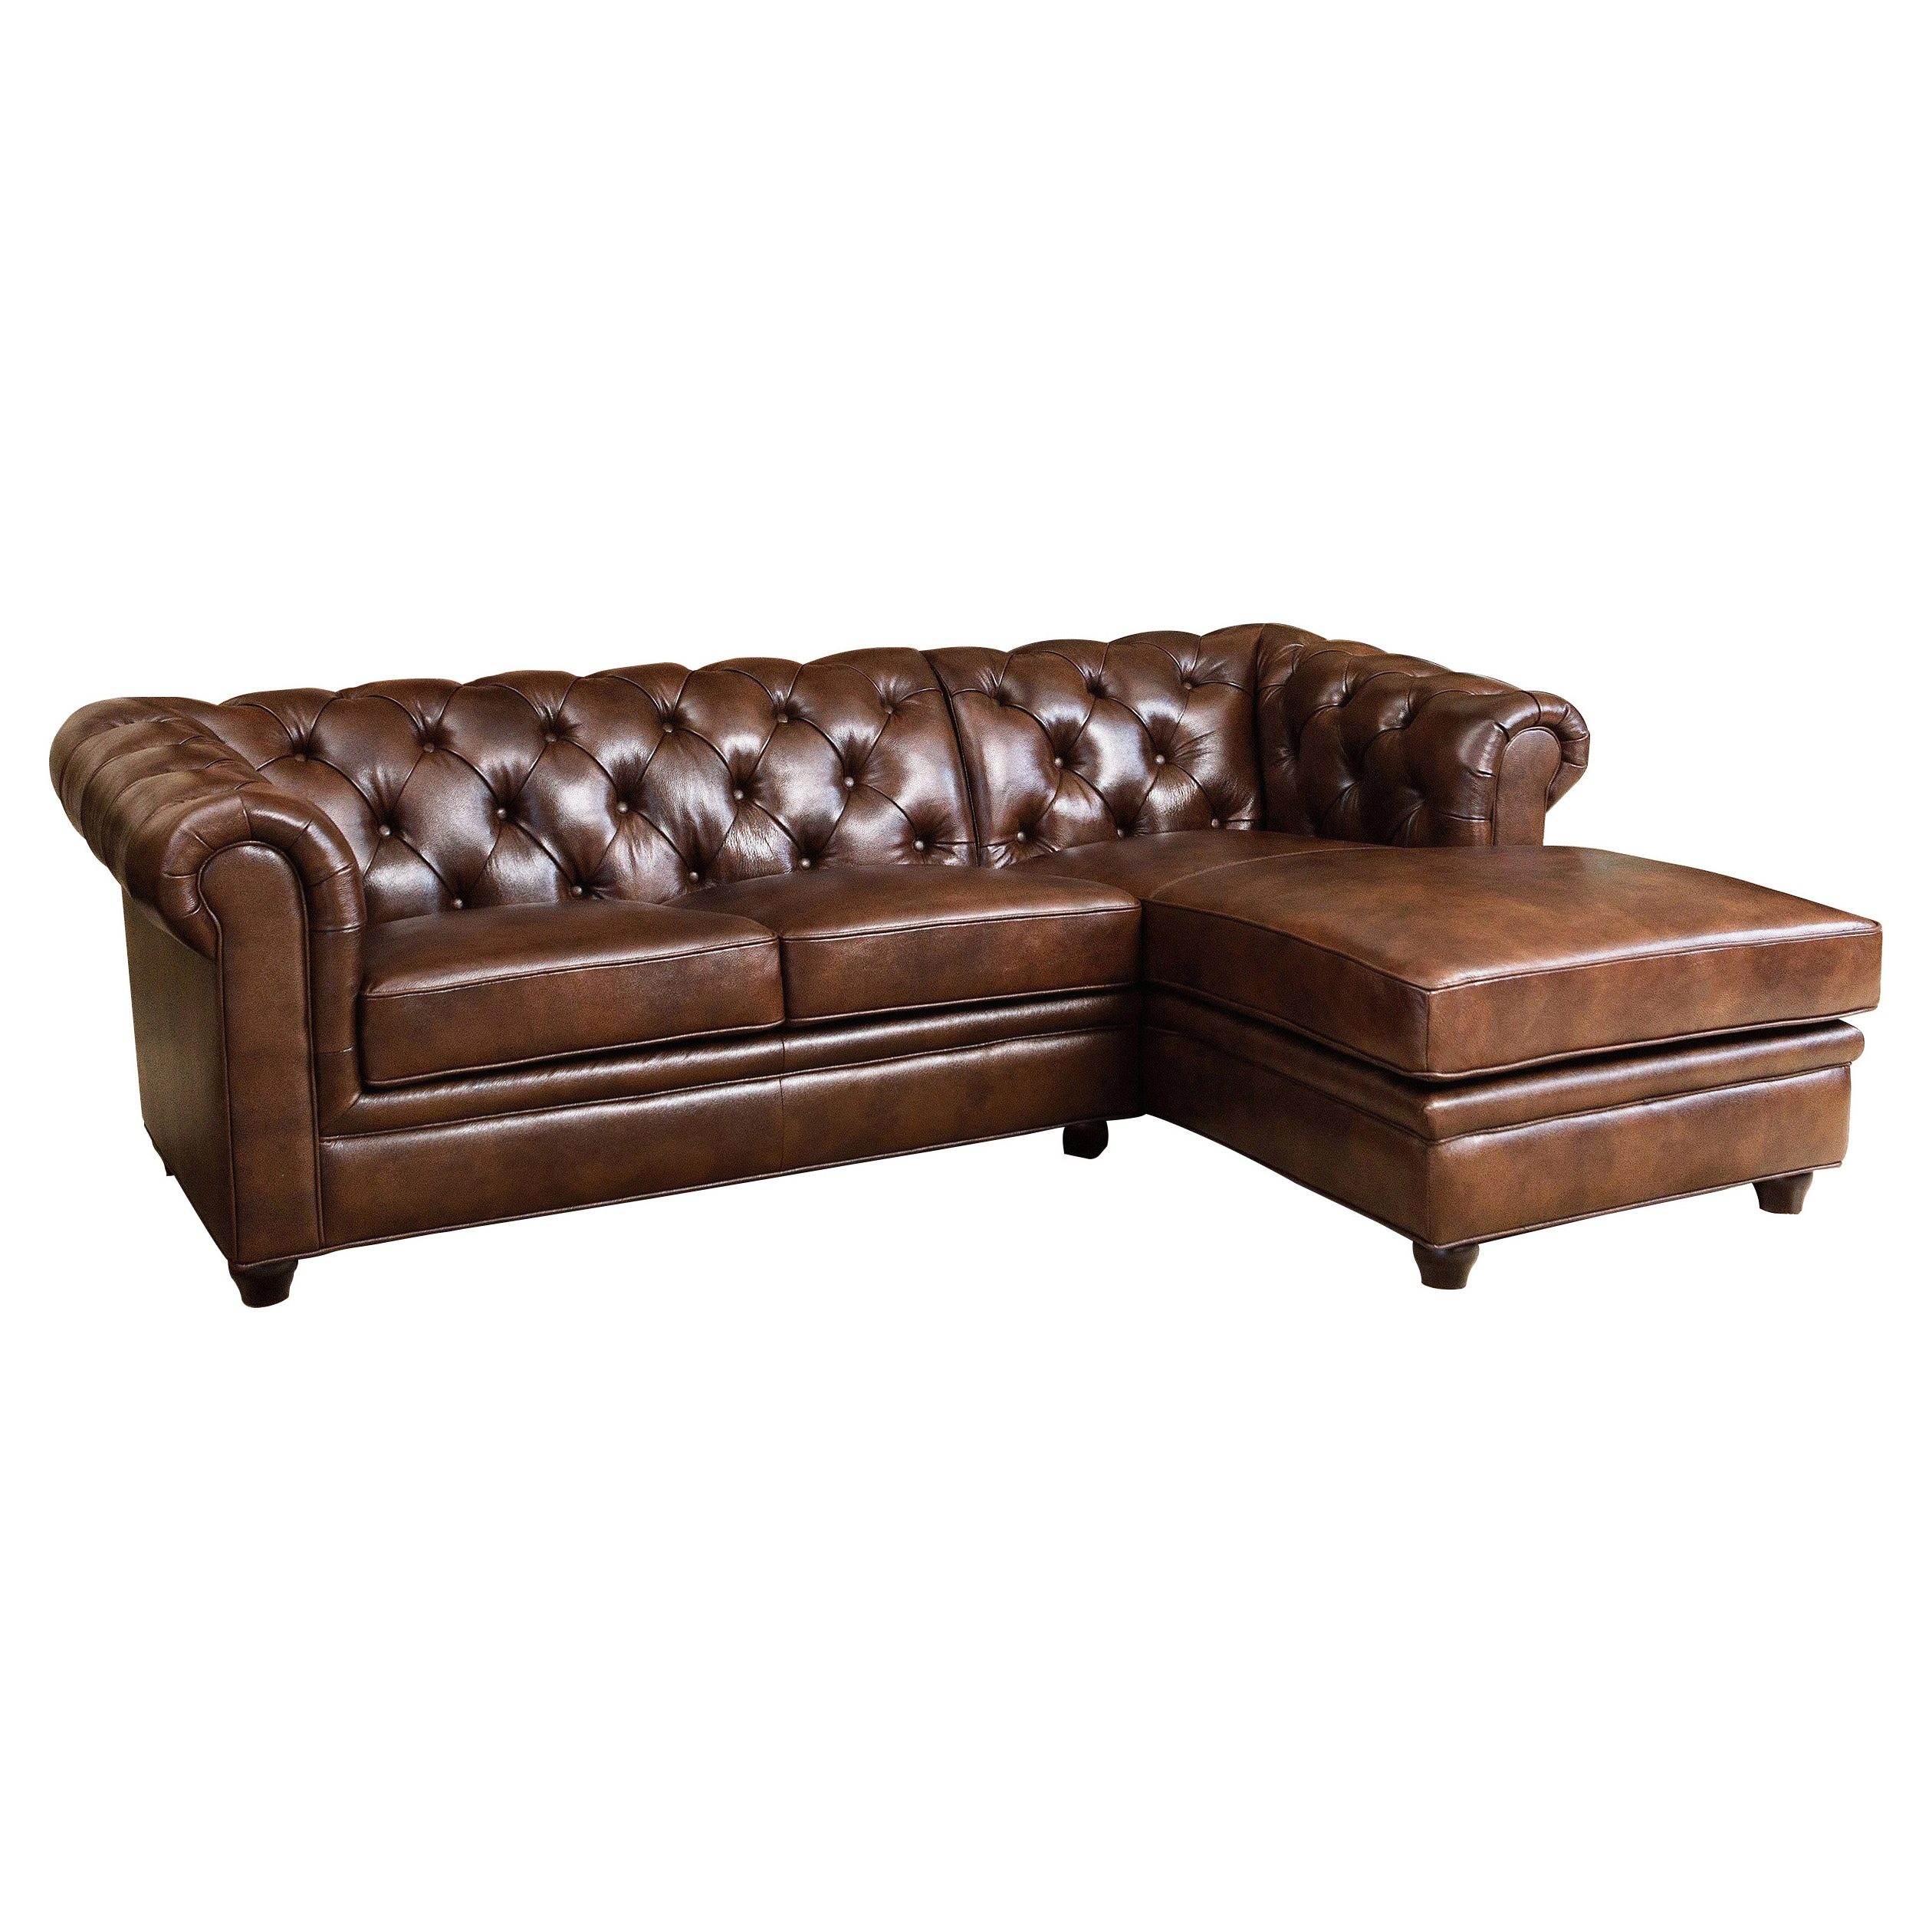 Abbyson Tuscan Tufted Top Grain Leather Chaise Sectional